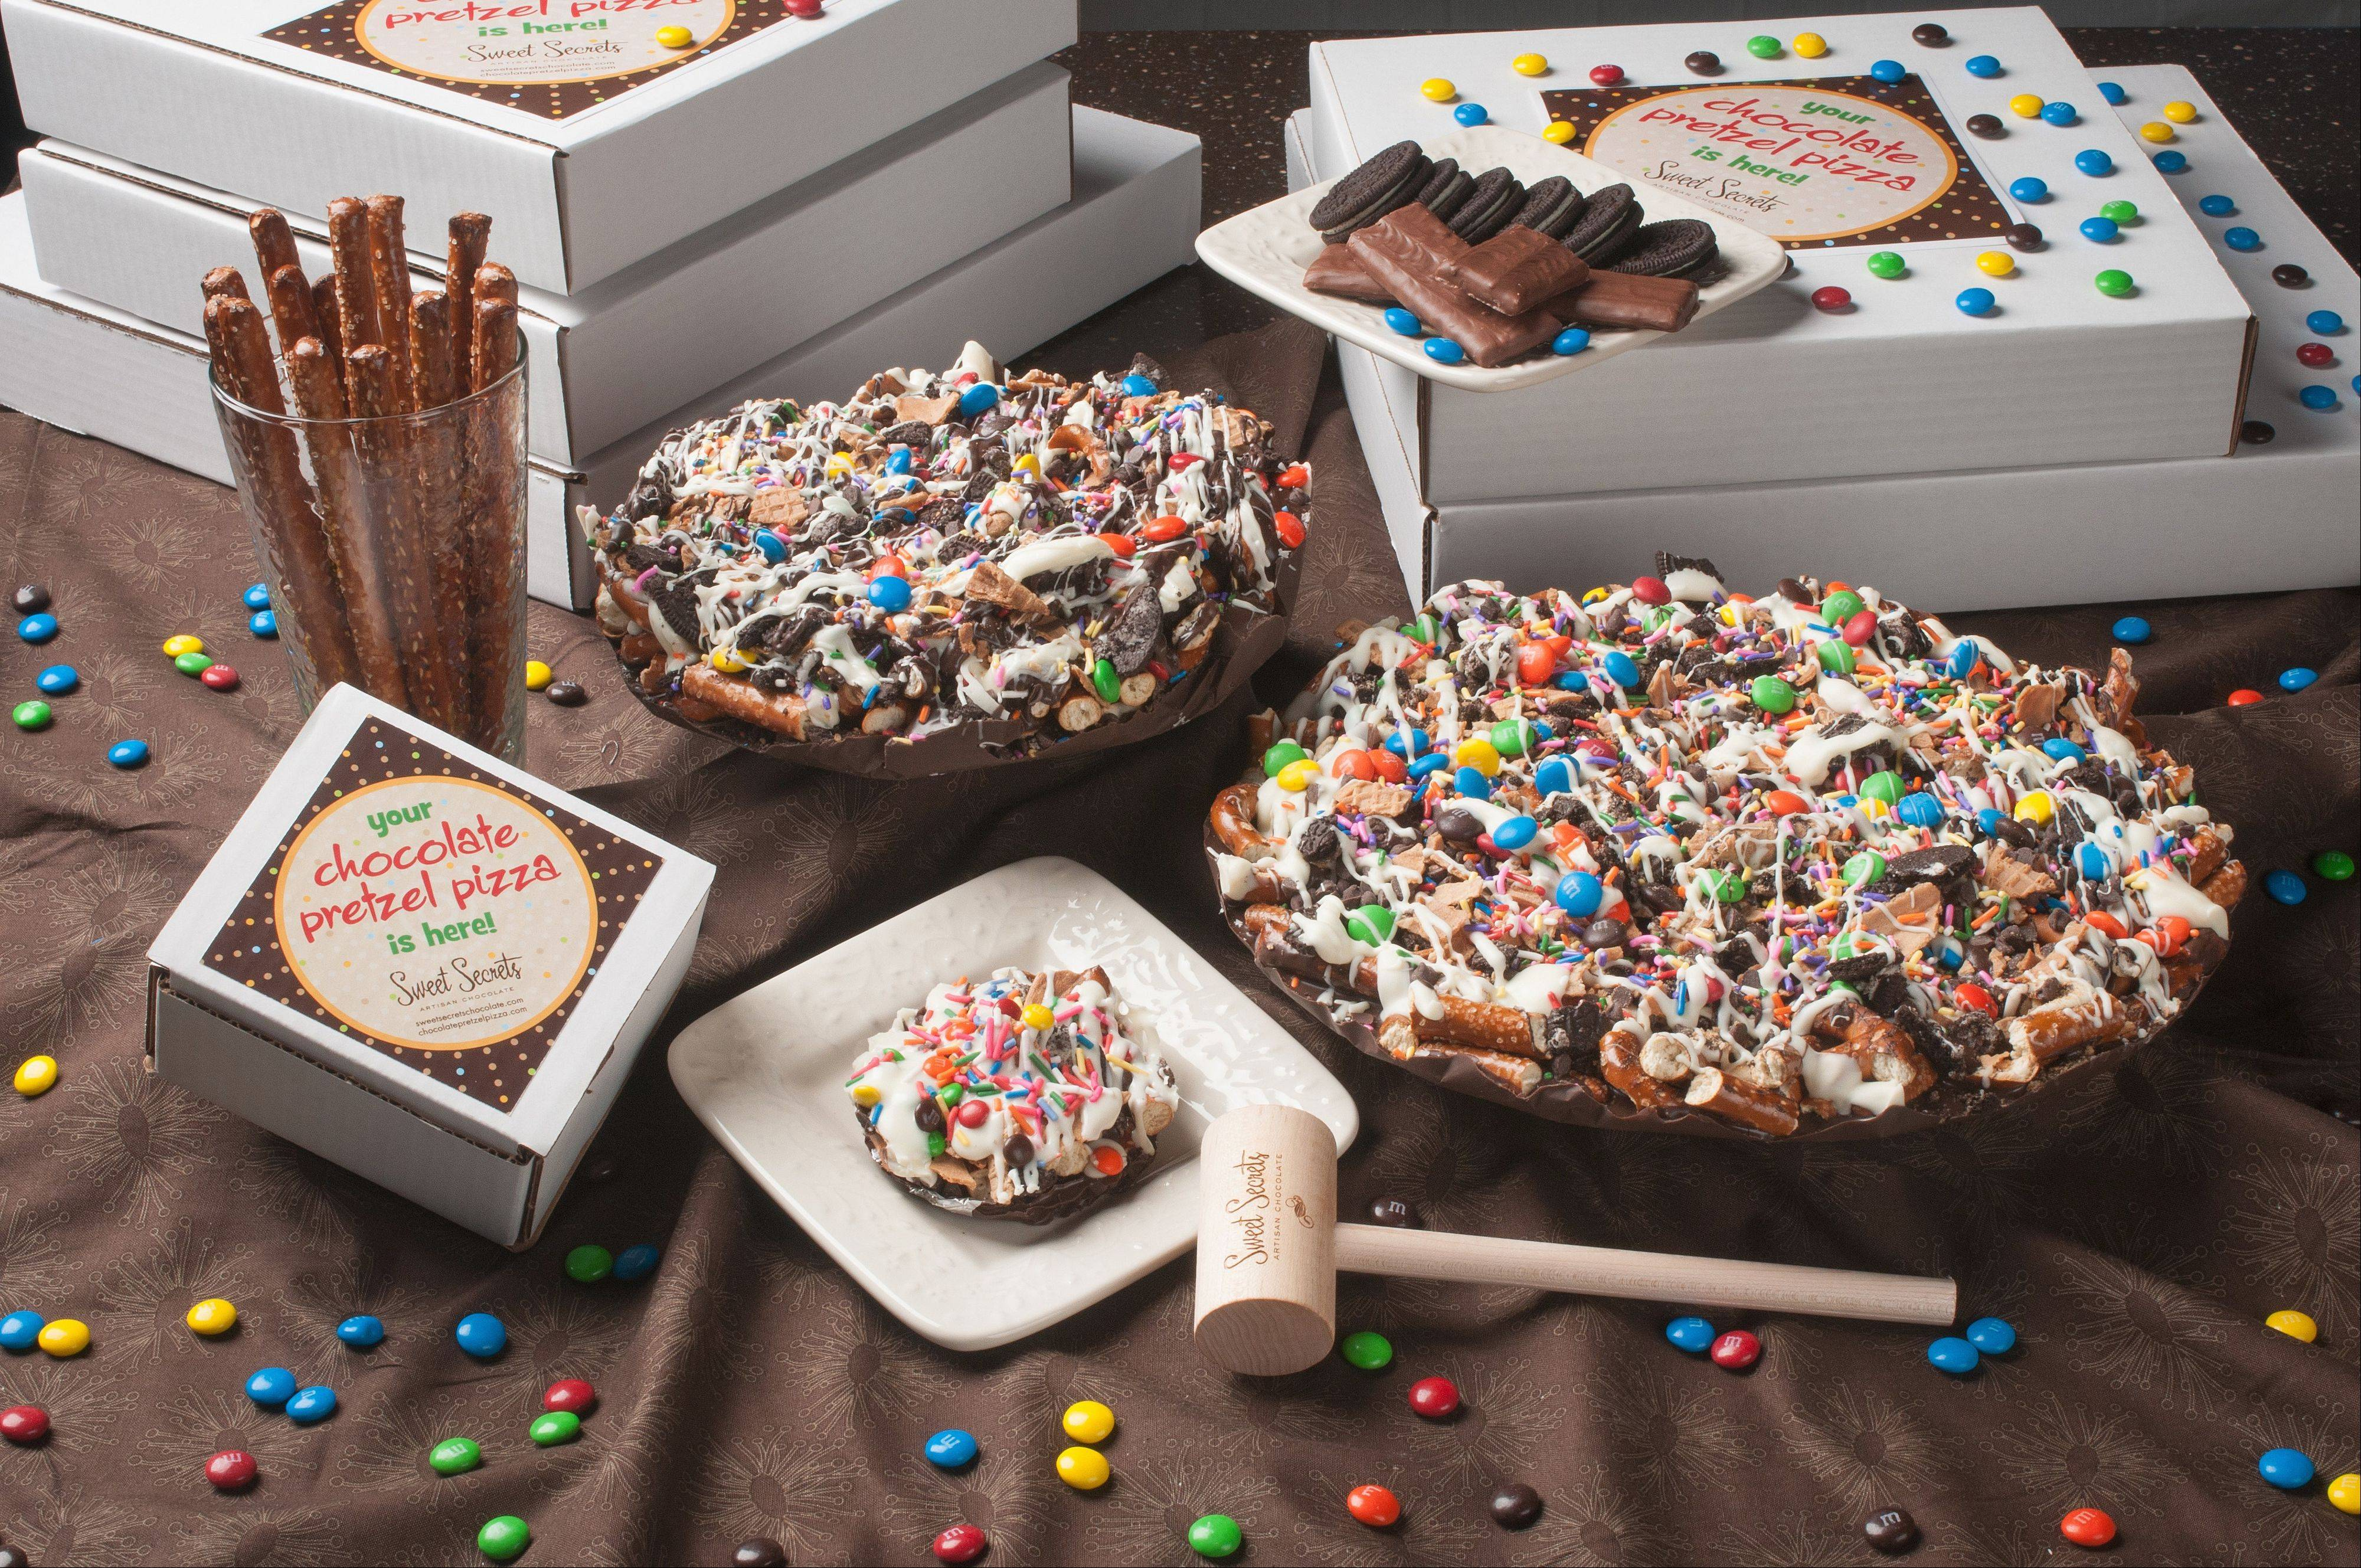 Chocolate Pretzel Pizzas from Wheaton's Sweet Secrets Chocolate are a finalist for Best New Product at the Chicago Fine Chocolate and Dessert Show at Navy Pier later this month.